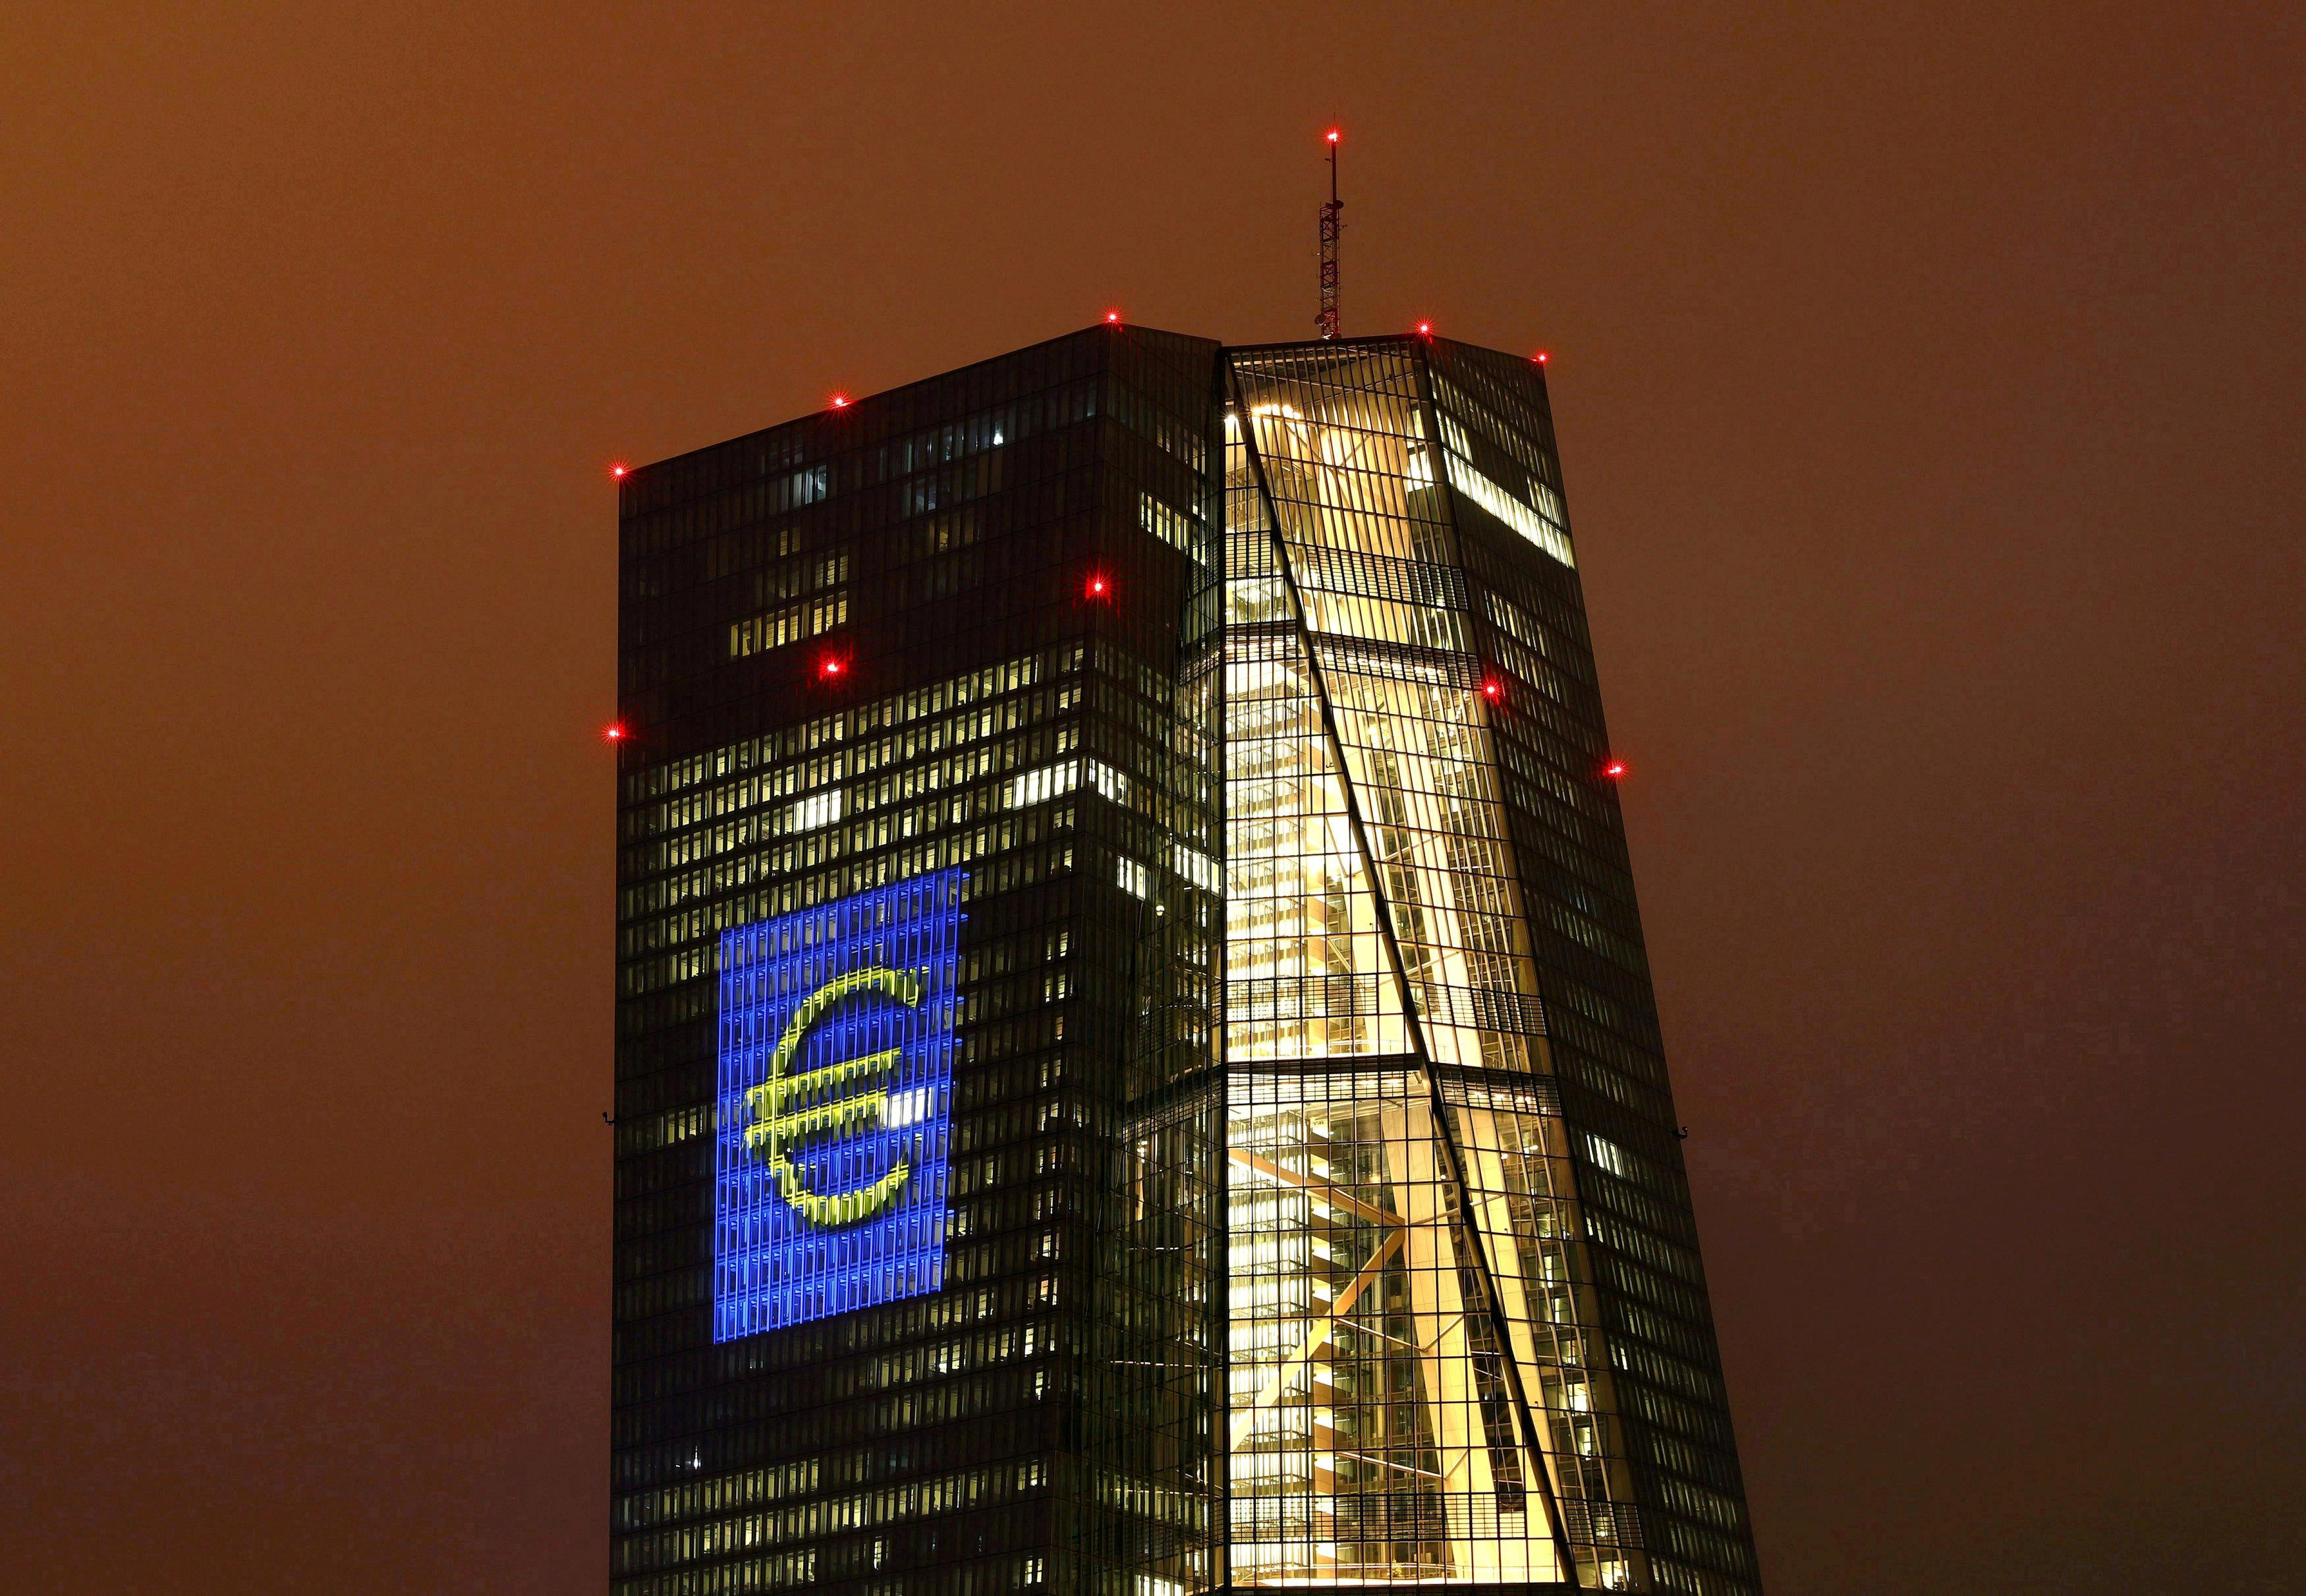 Commerzbank brings forward ECB rate-cut expectation to July